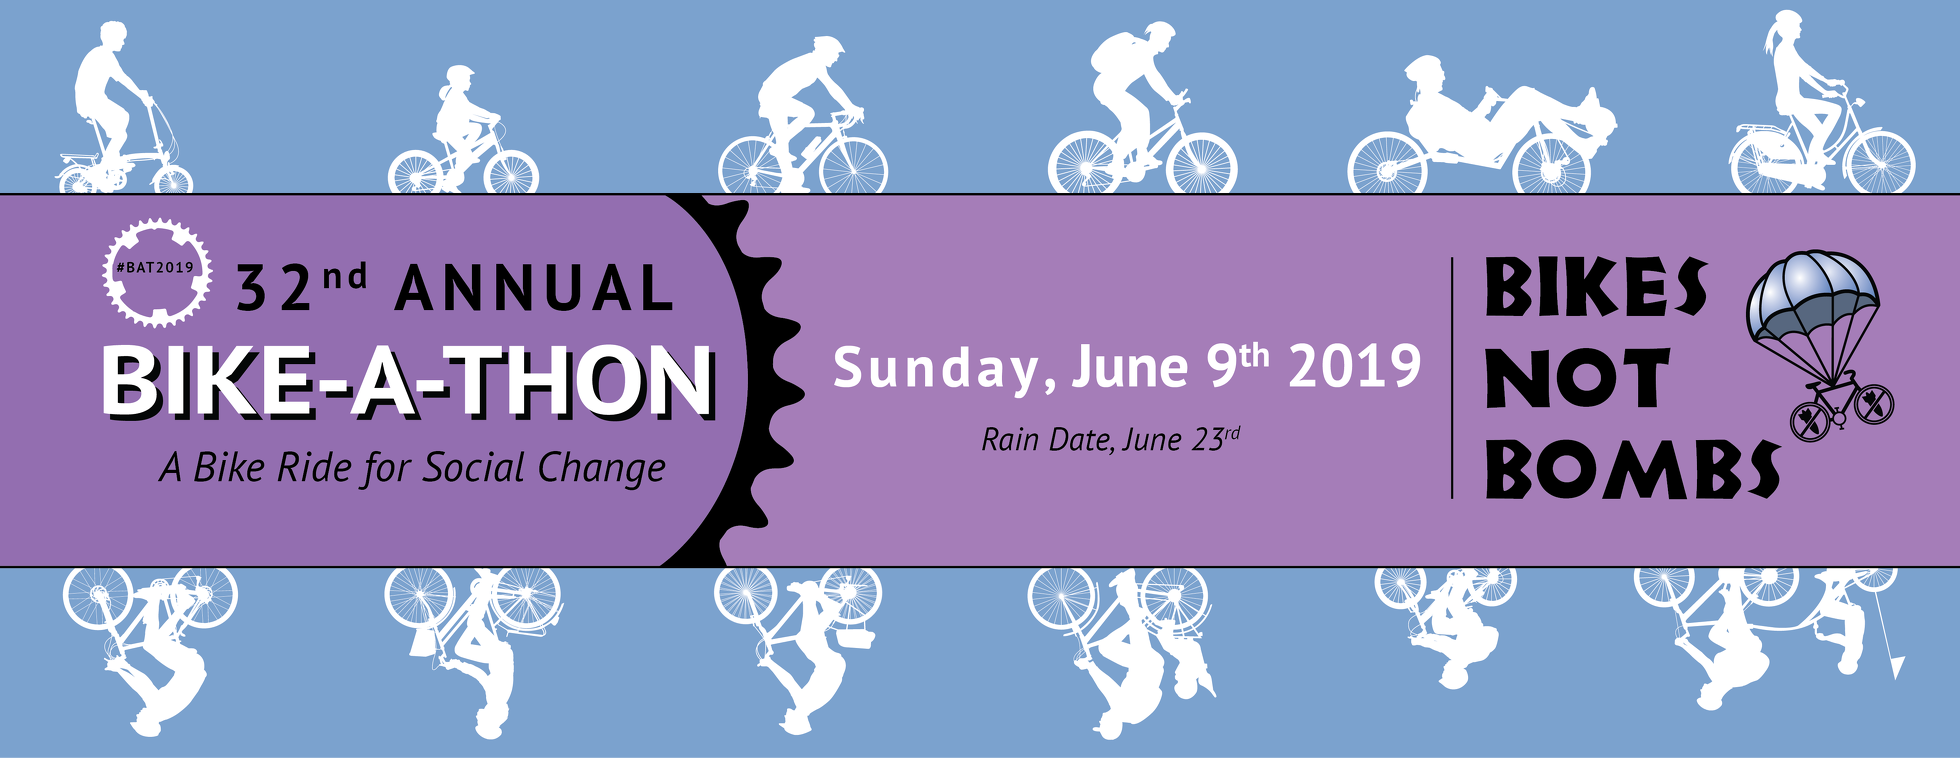 32nd Annual Bikes Not Bombs Bike-A-Thon 2019